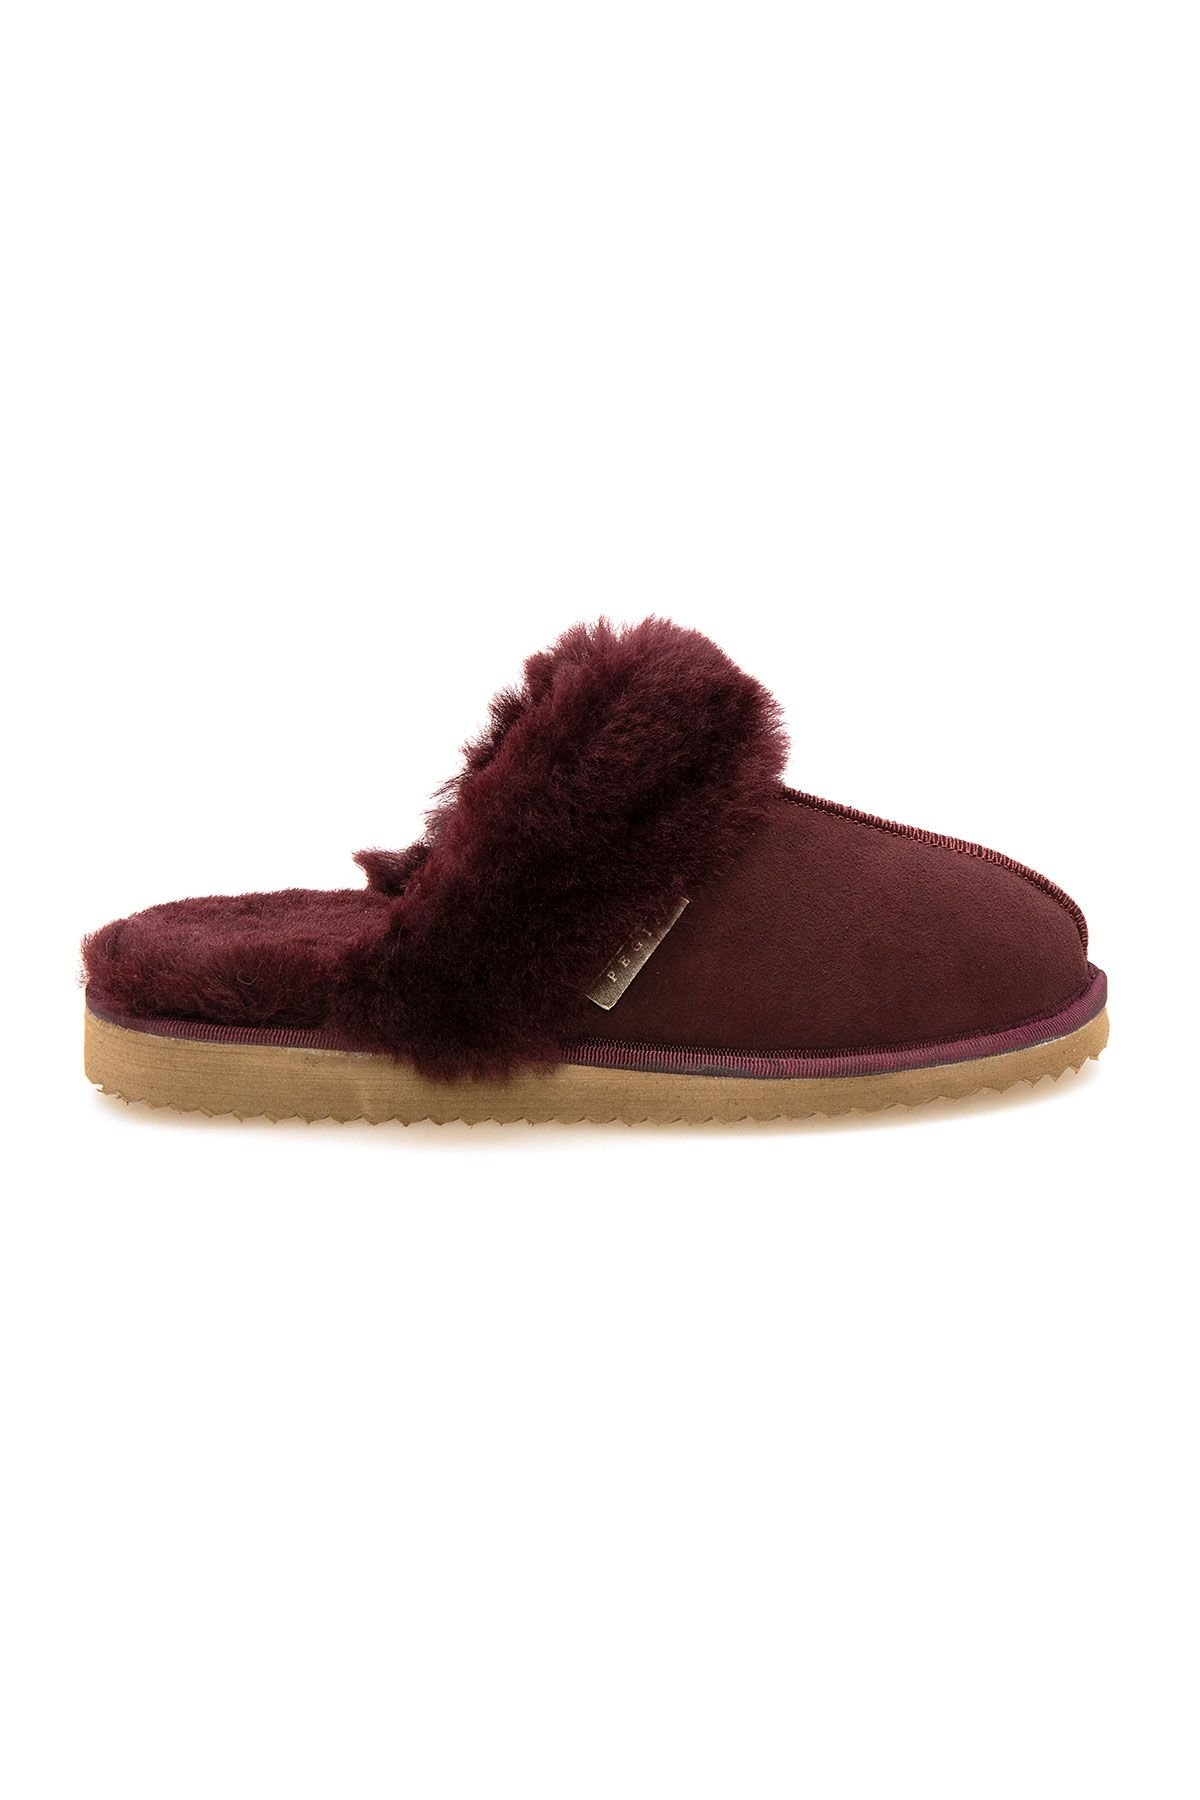 Pegia Genuine Sheepskin Women's House Slippers 212001 Claret red